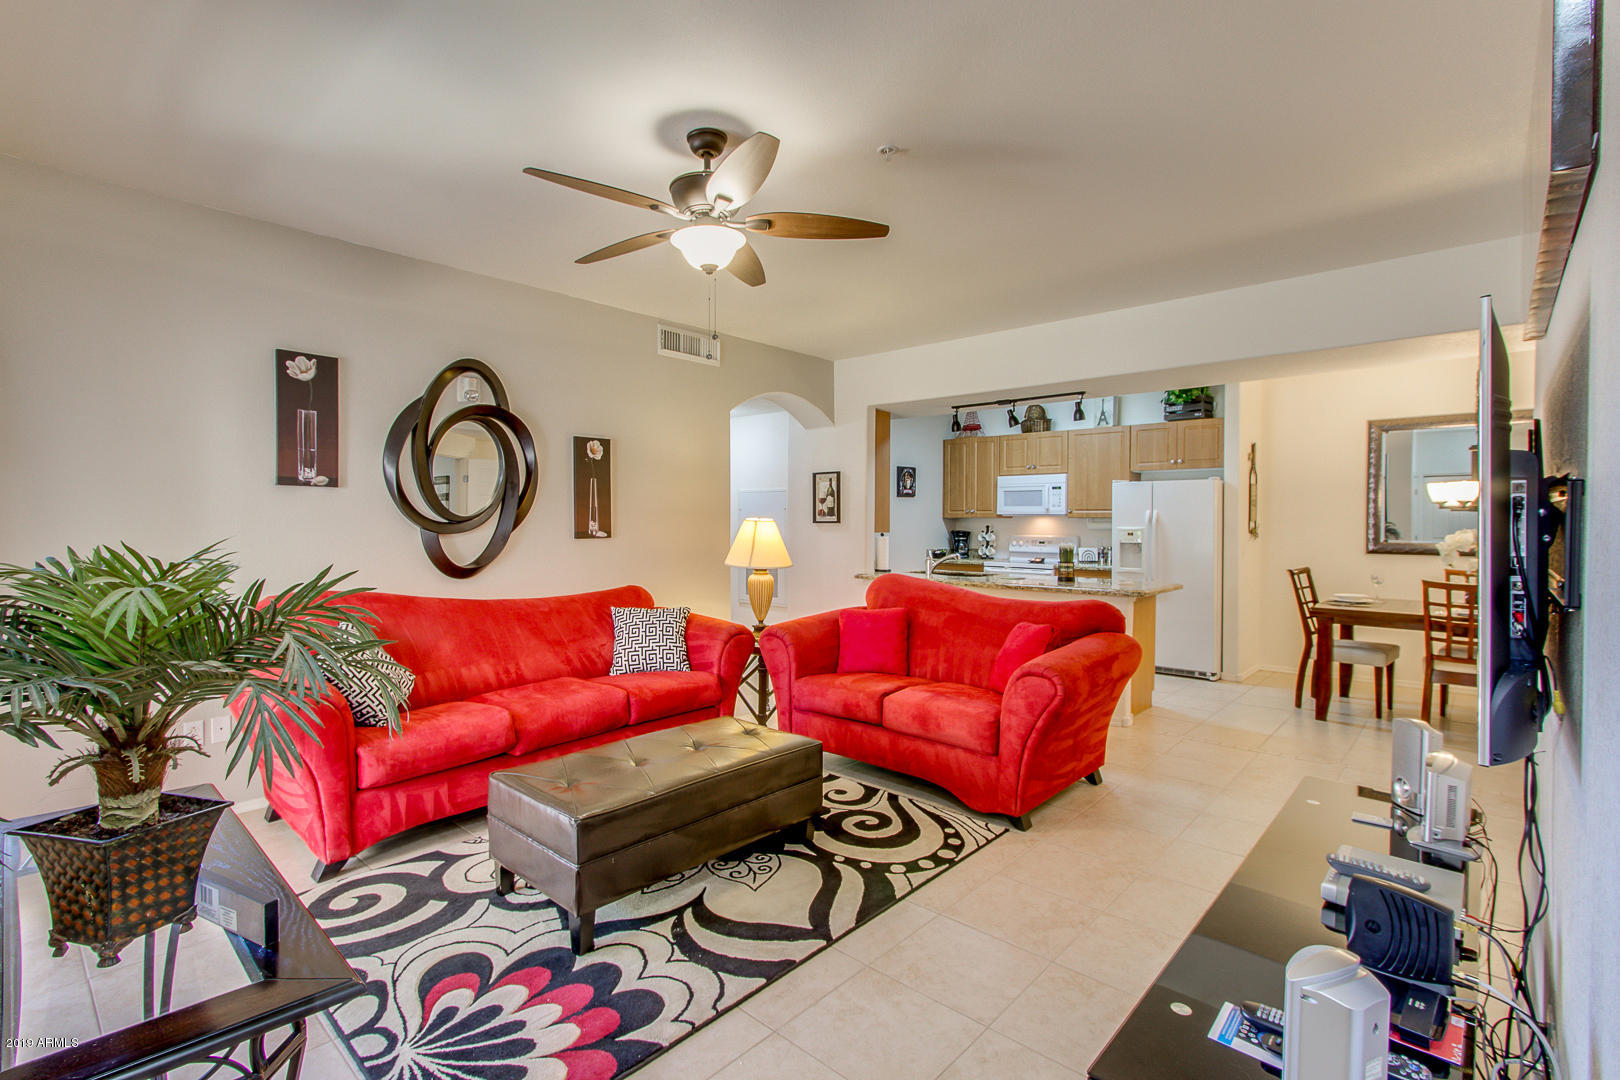 10136 E SOUTHERN Avenue # 1064, Mesa, Arizona 85209, 2 Bedrooms Bedrooms, ,Residential Lease,For Rent,10136 E SOUTHERN Avenue # 1064,5922668